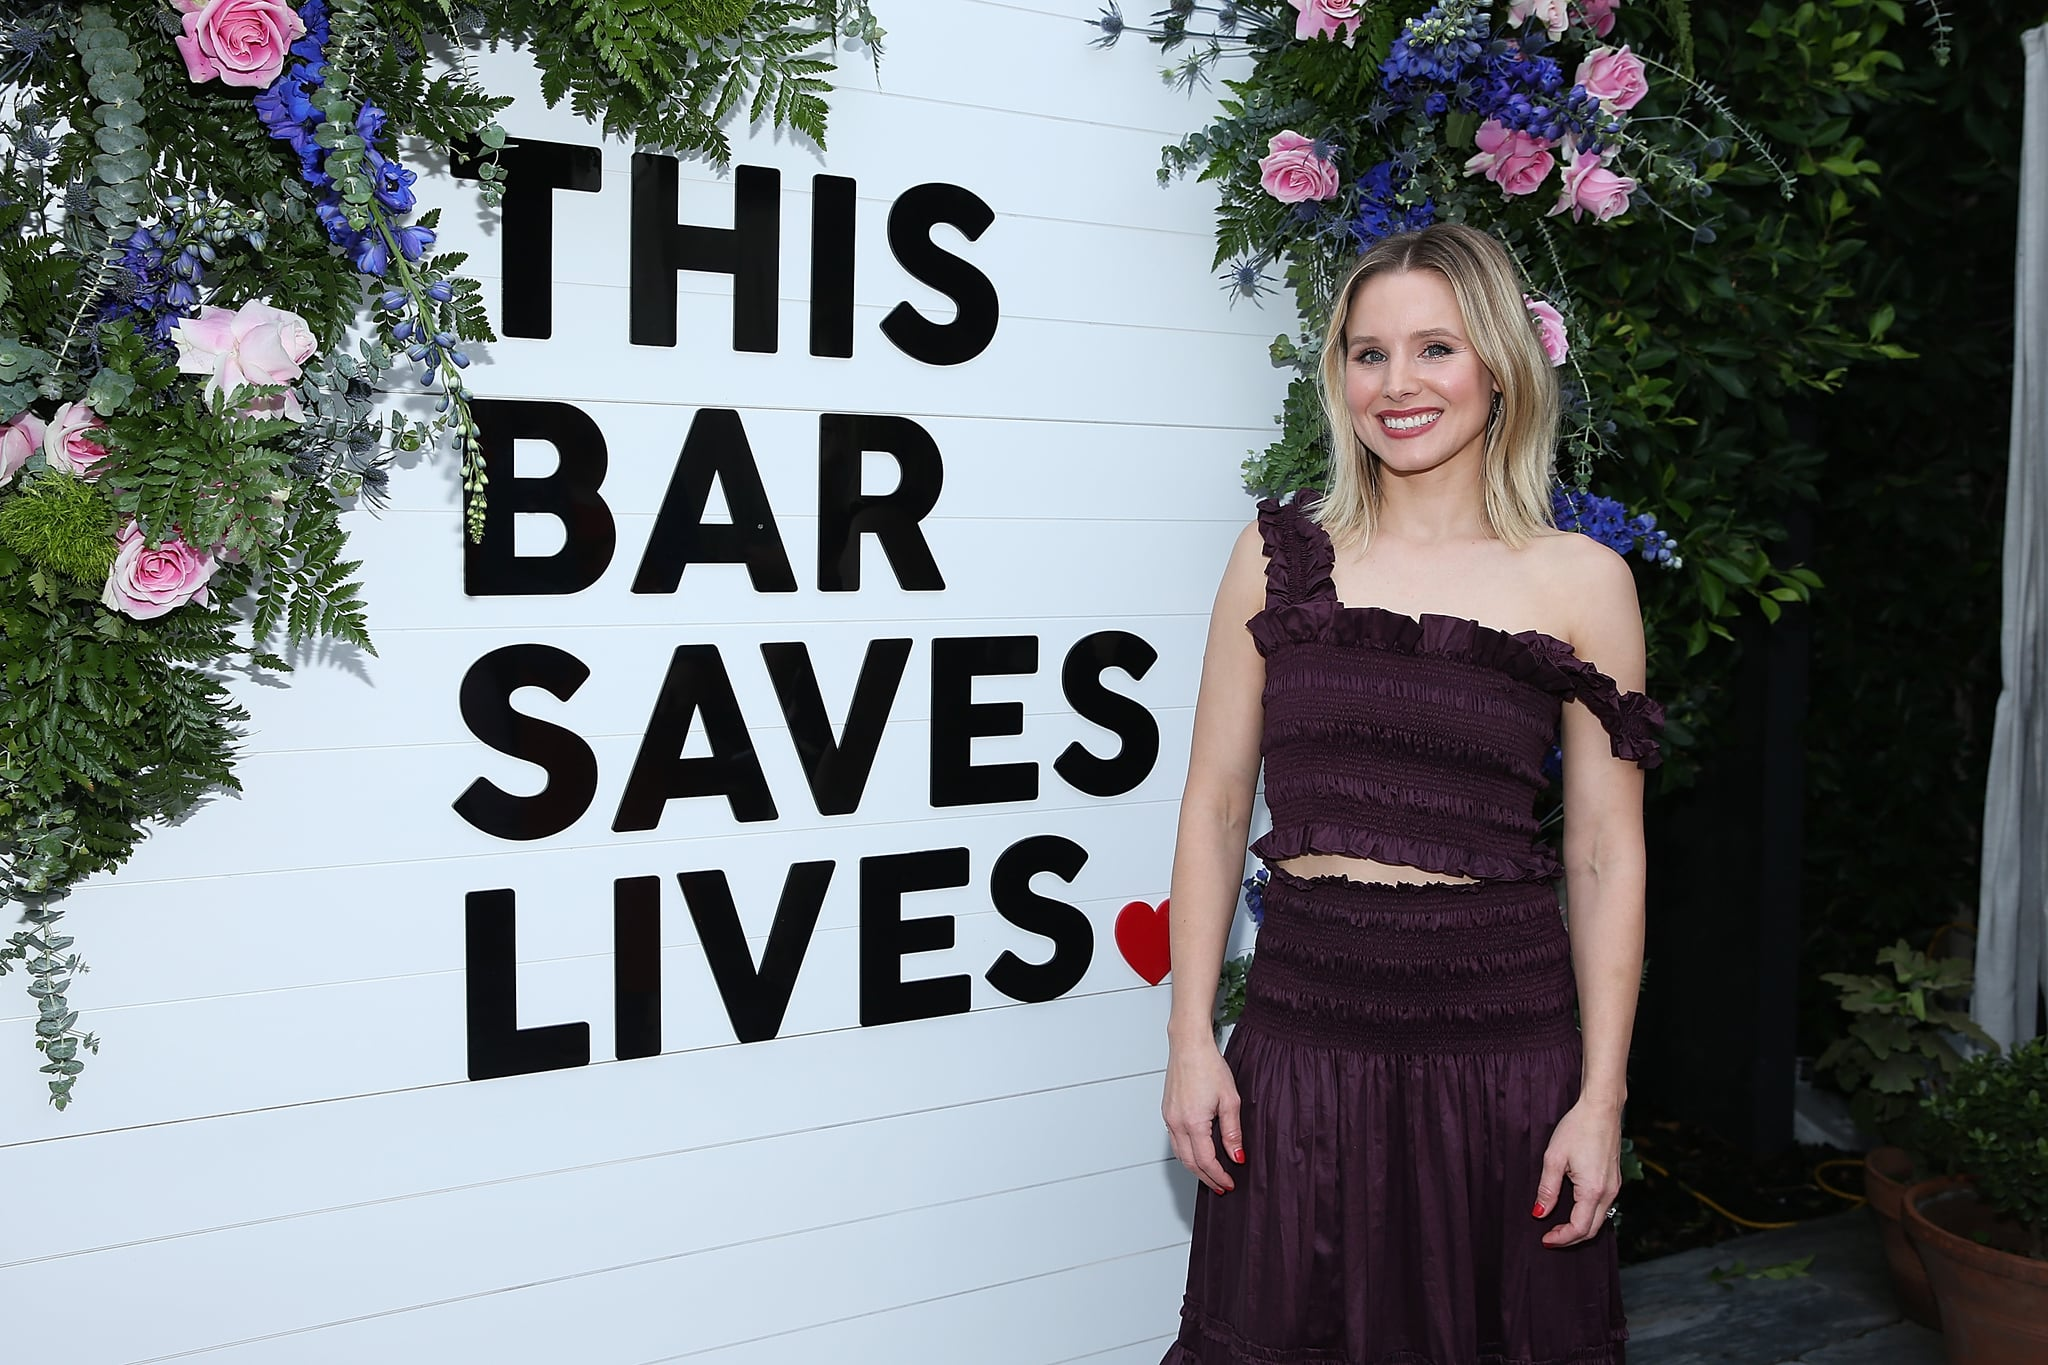 WEST HOLLYWOOD, CA - APRIL 05:  Kristen Bell attends This Bar Saves Lives Press Launch Party at Ysabel on April 5, 2018 in West Hollywood, California.  (Photo by Phillip Faraone/Getty Images)